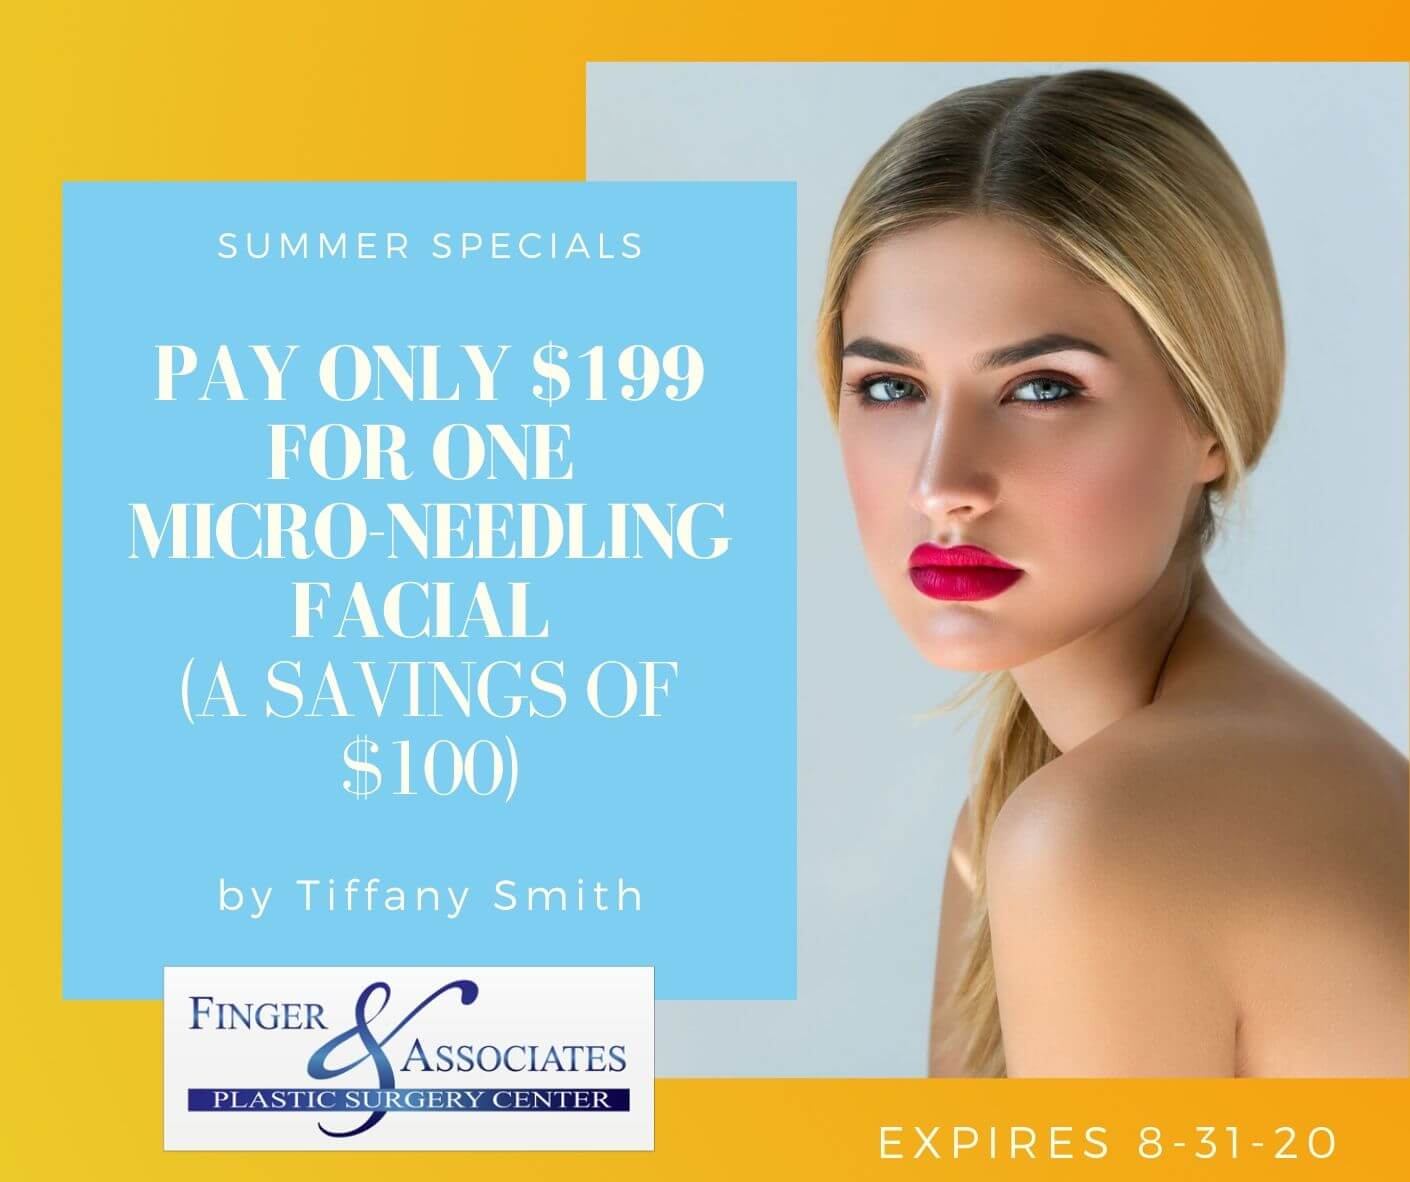 Summer specials by Tiffany Smith